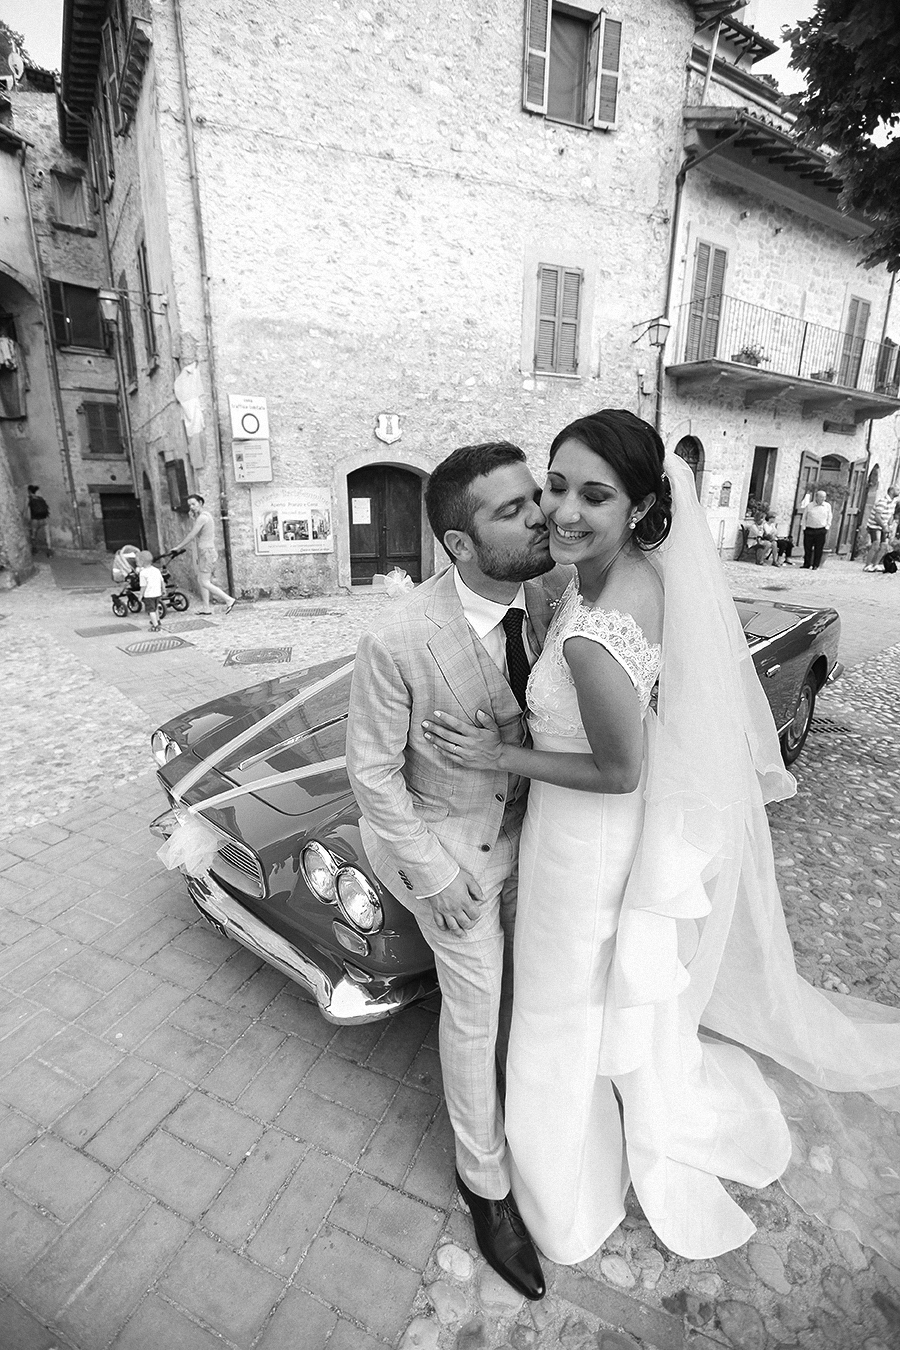 italy wedding photography by kurt ahs . alex + silvia ( washington united states ) . 7391.jpg